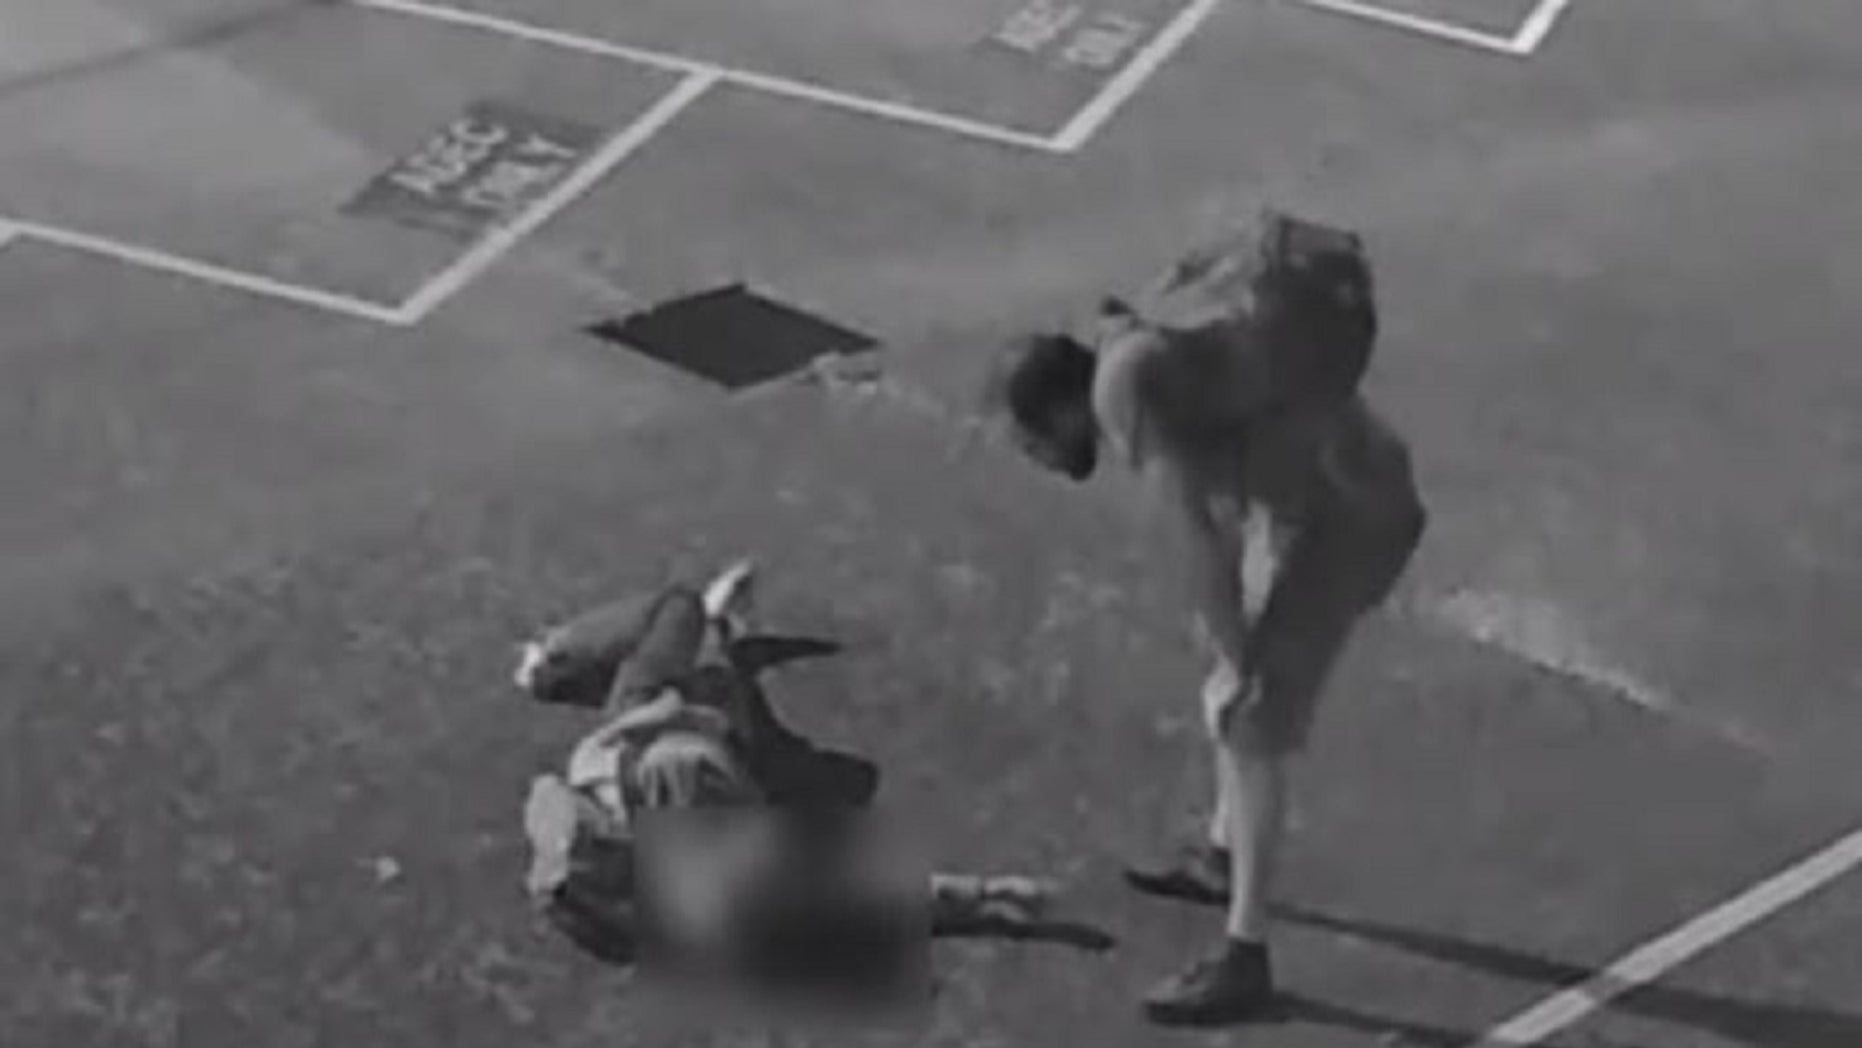 A monitor video from the surveillance video shows a suspect standing over an unidentified American tourist who was badly beaten in Australia, police said.